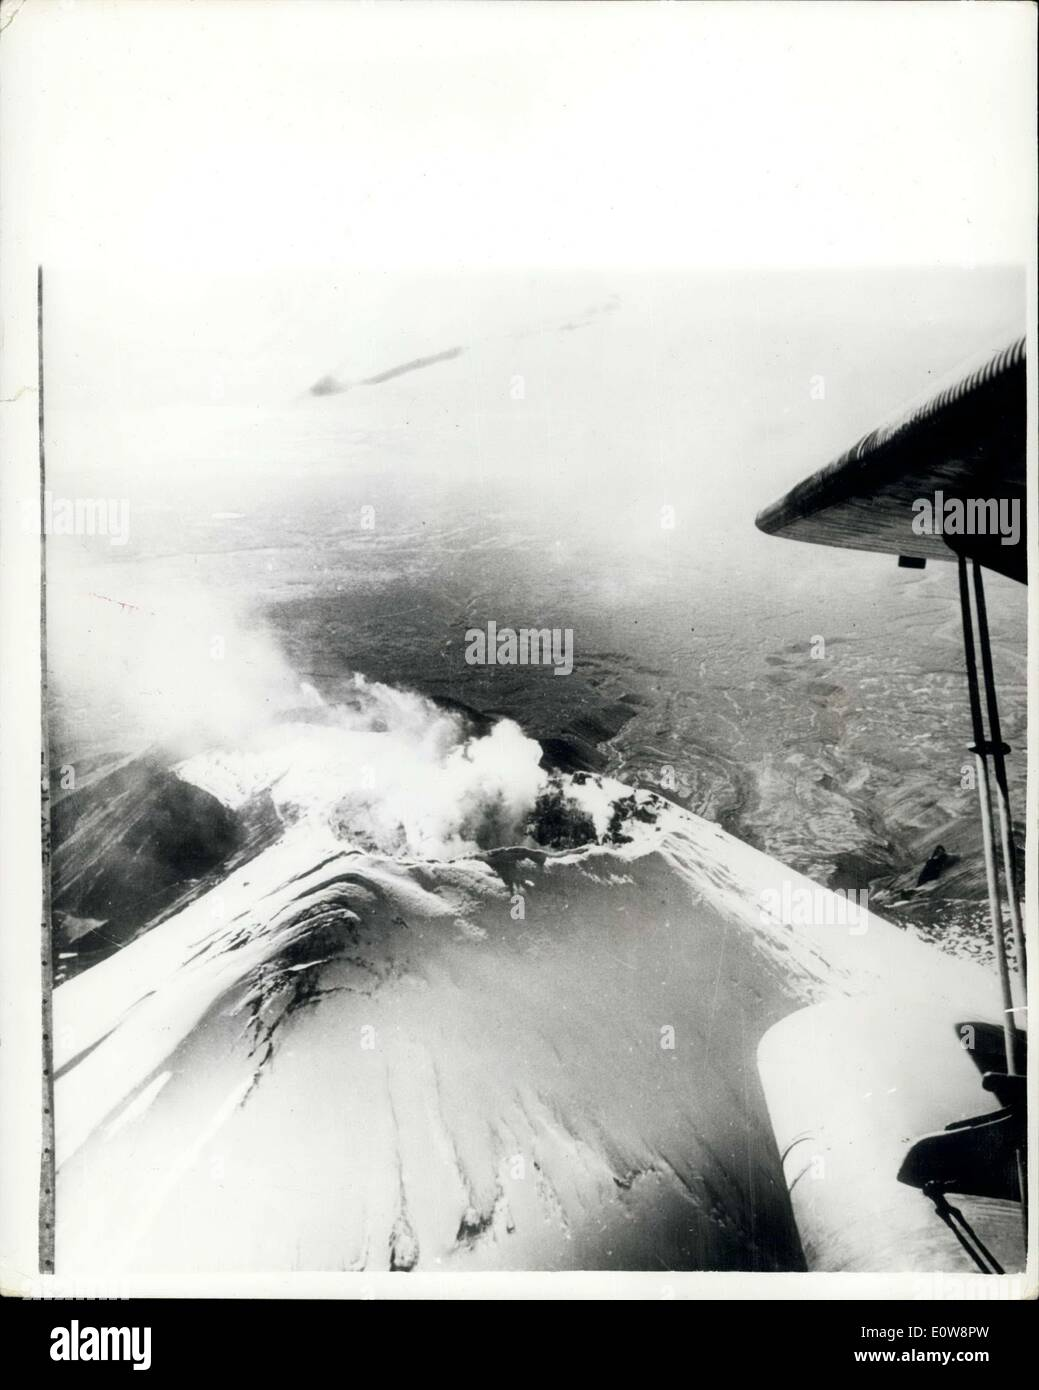 Nov. 21, 1961 - A Siberian Volcano Awakens: The Avachinsk, a Siberian volcano which had been extinct for centuries, began crupting recently. Photo shows The volcano's center photographed plane after it started erupting recently. - Stock Image